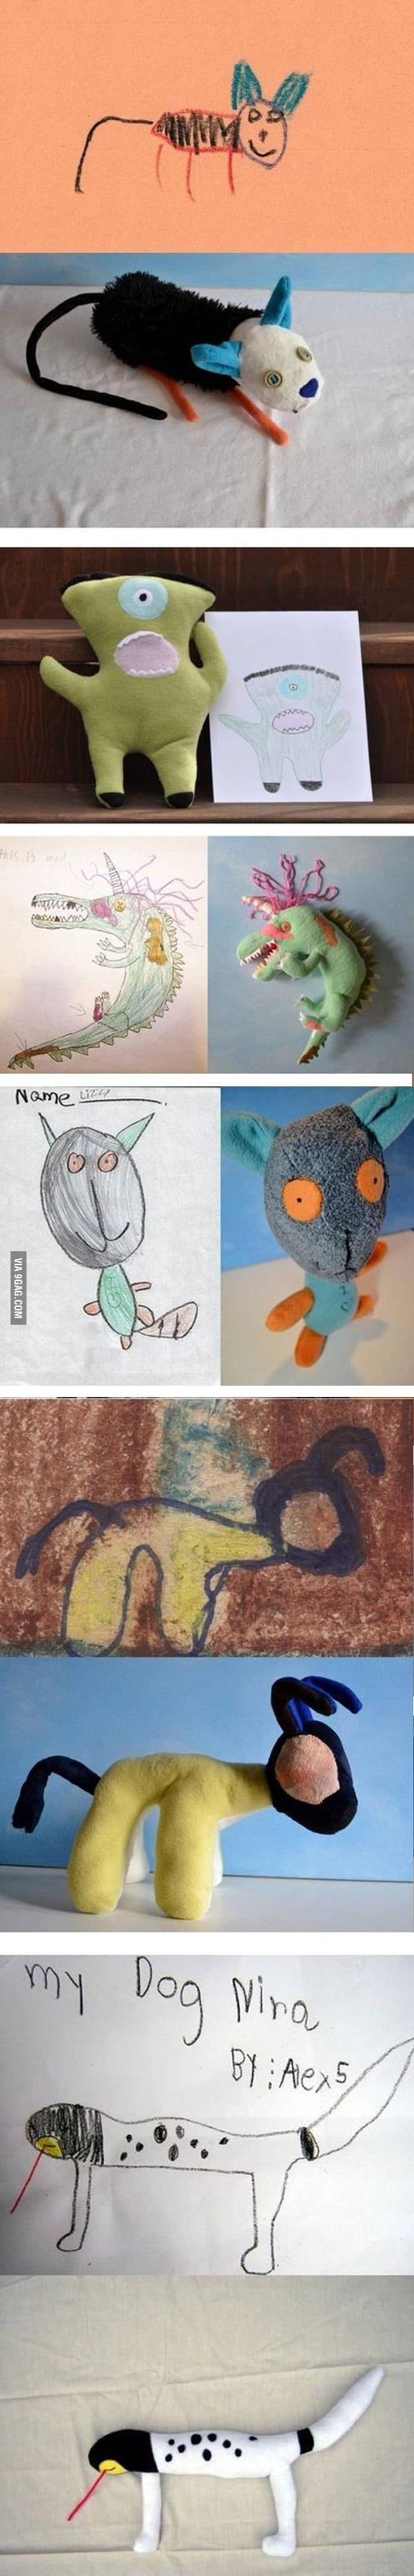 Awesome toy company making children's drawings into weird plush toys.